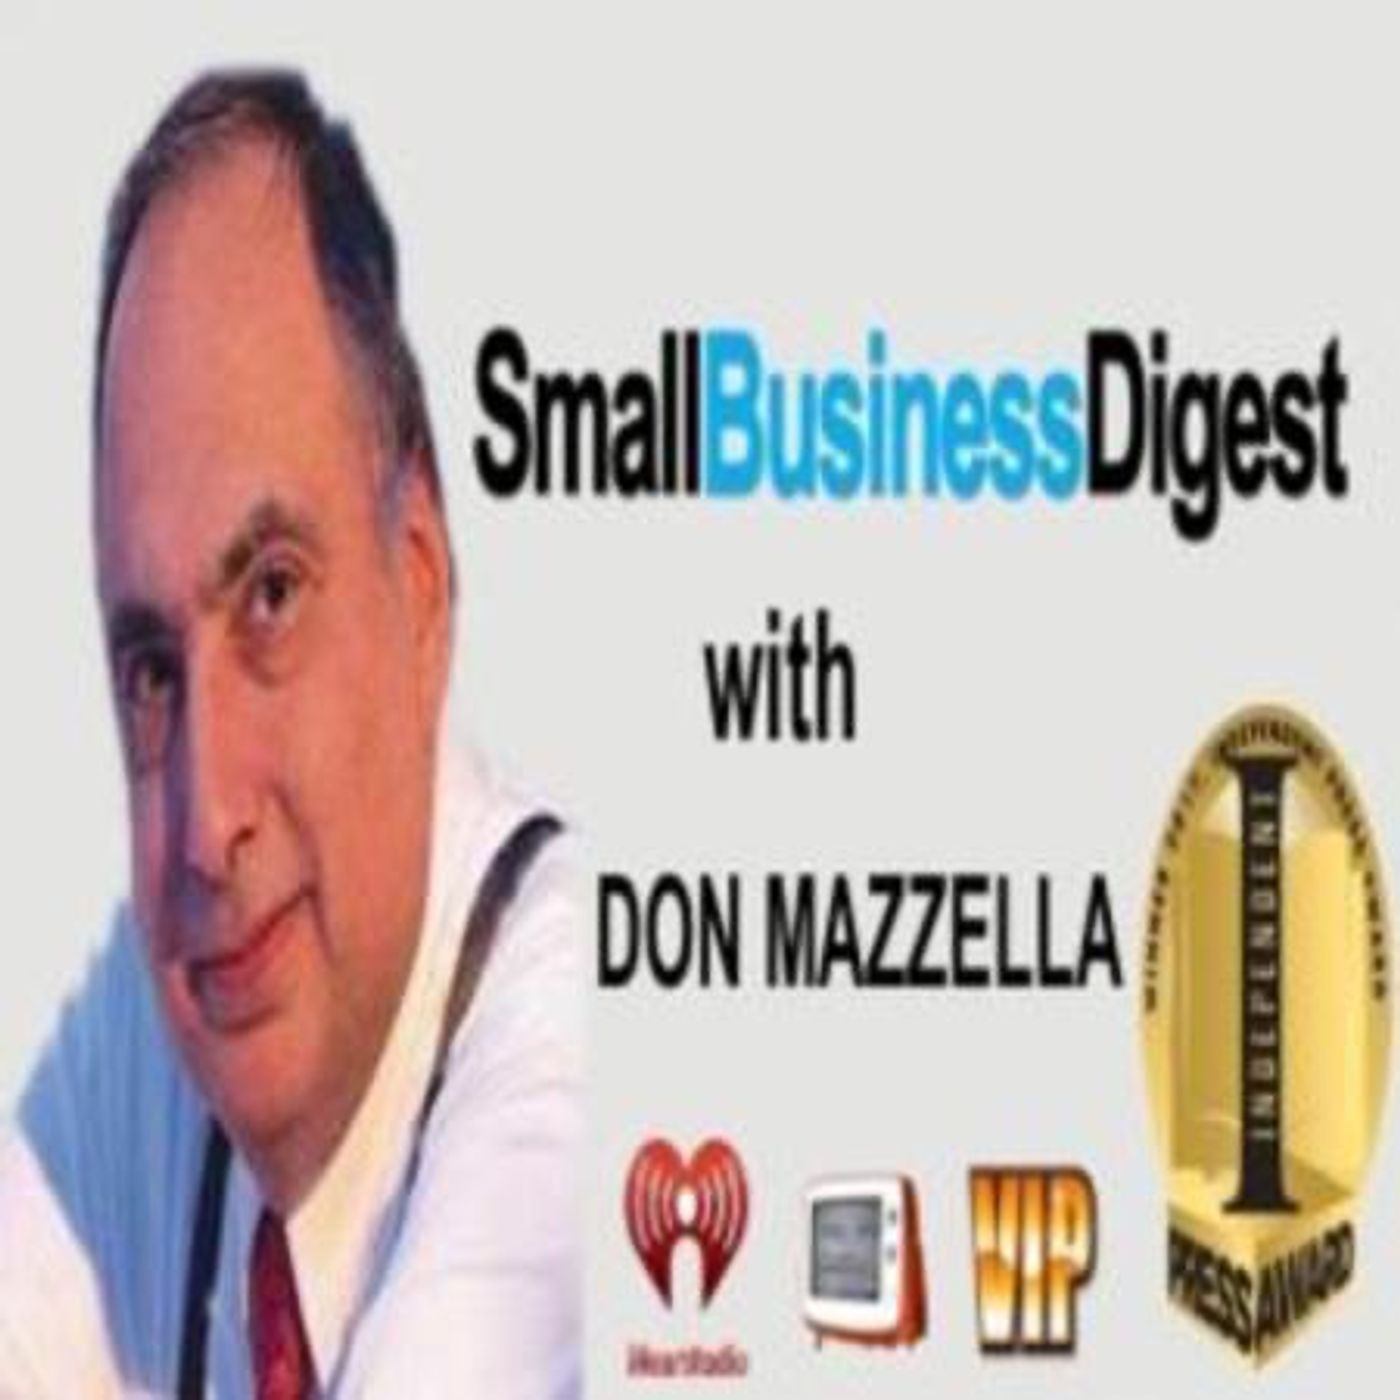 Small Business Digest - Barry C McCarthy & Robert Anderson